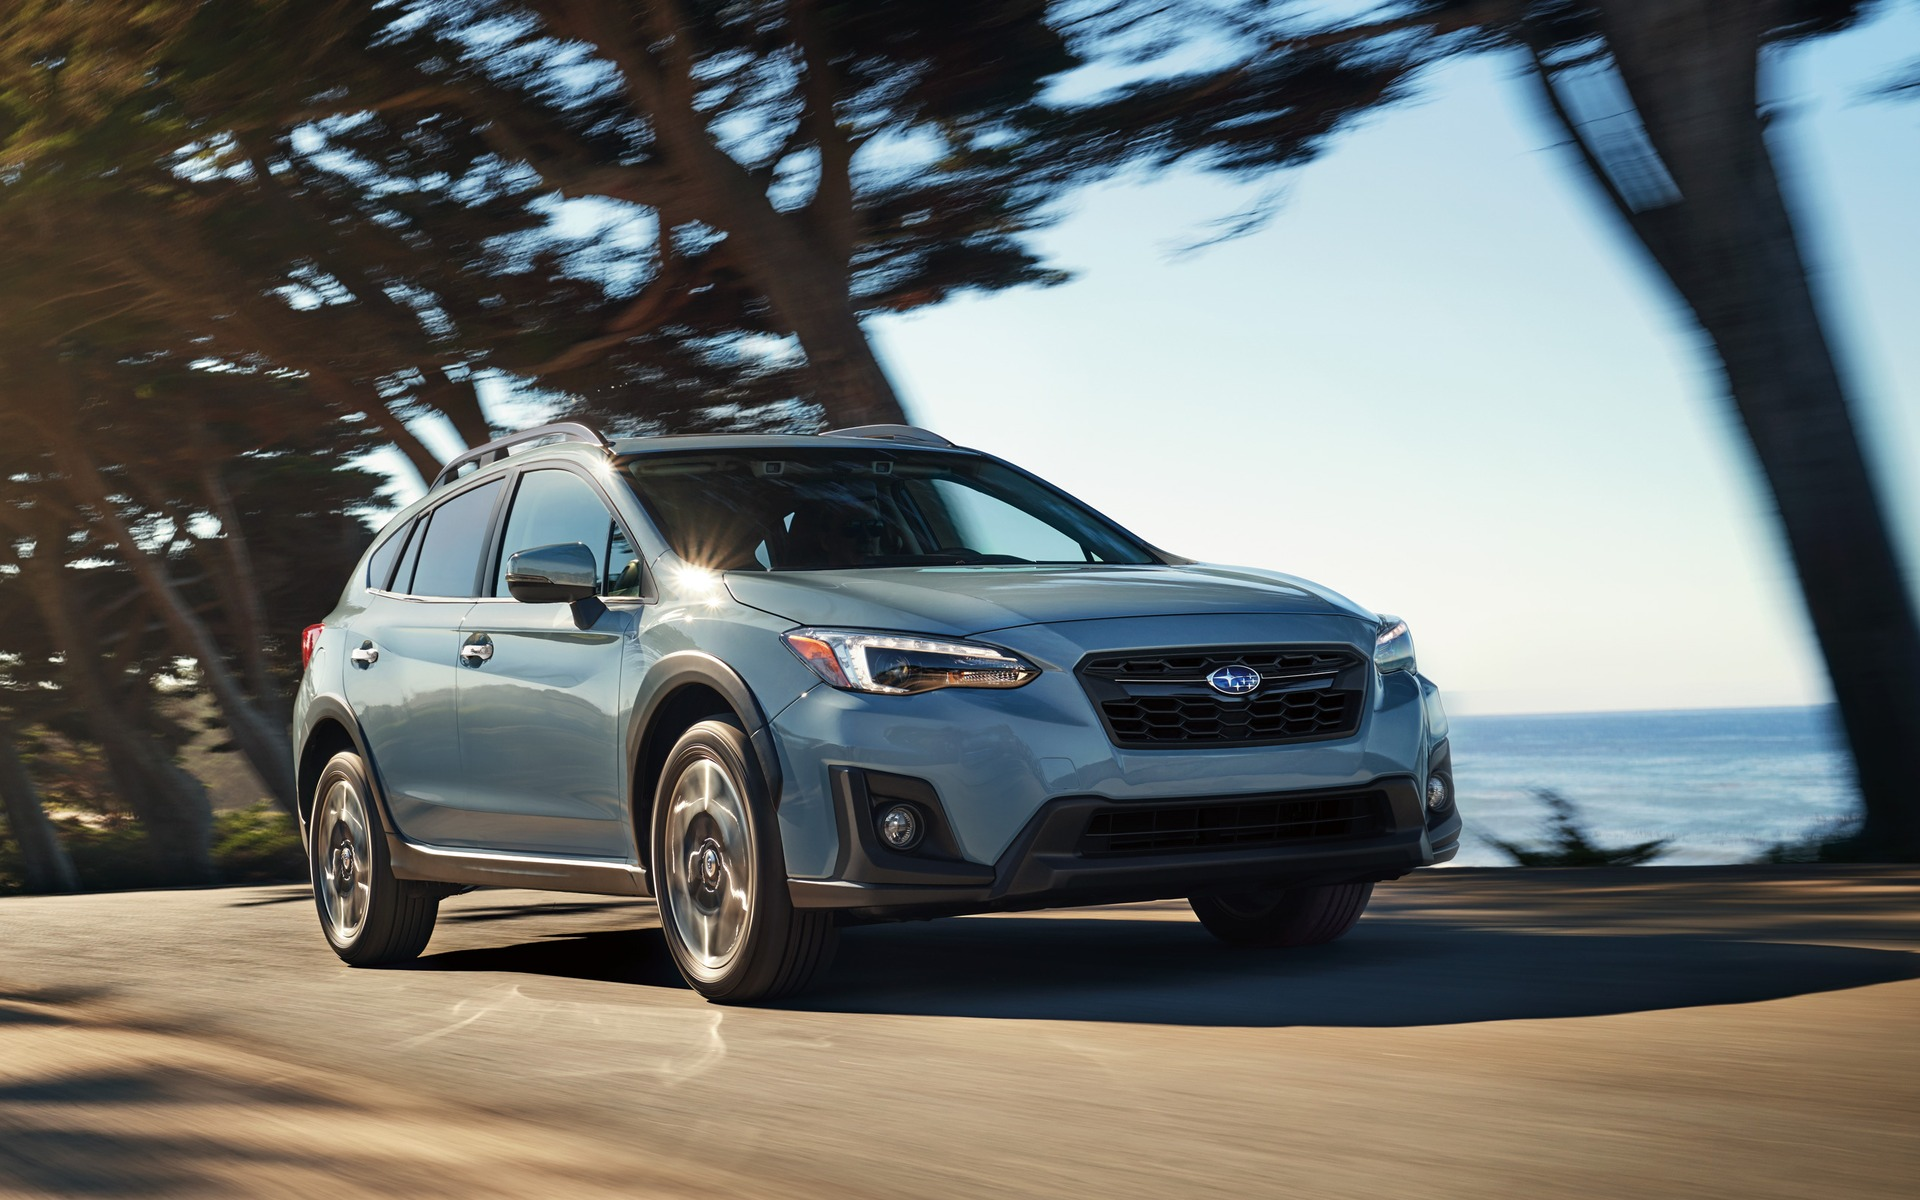 2018 Wrx Release Date >> Five Things To Know About The 2019 Subaru Crosstrek The